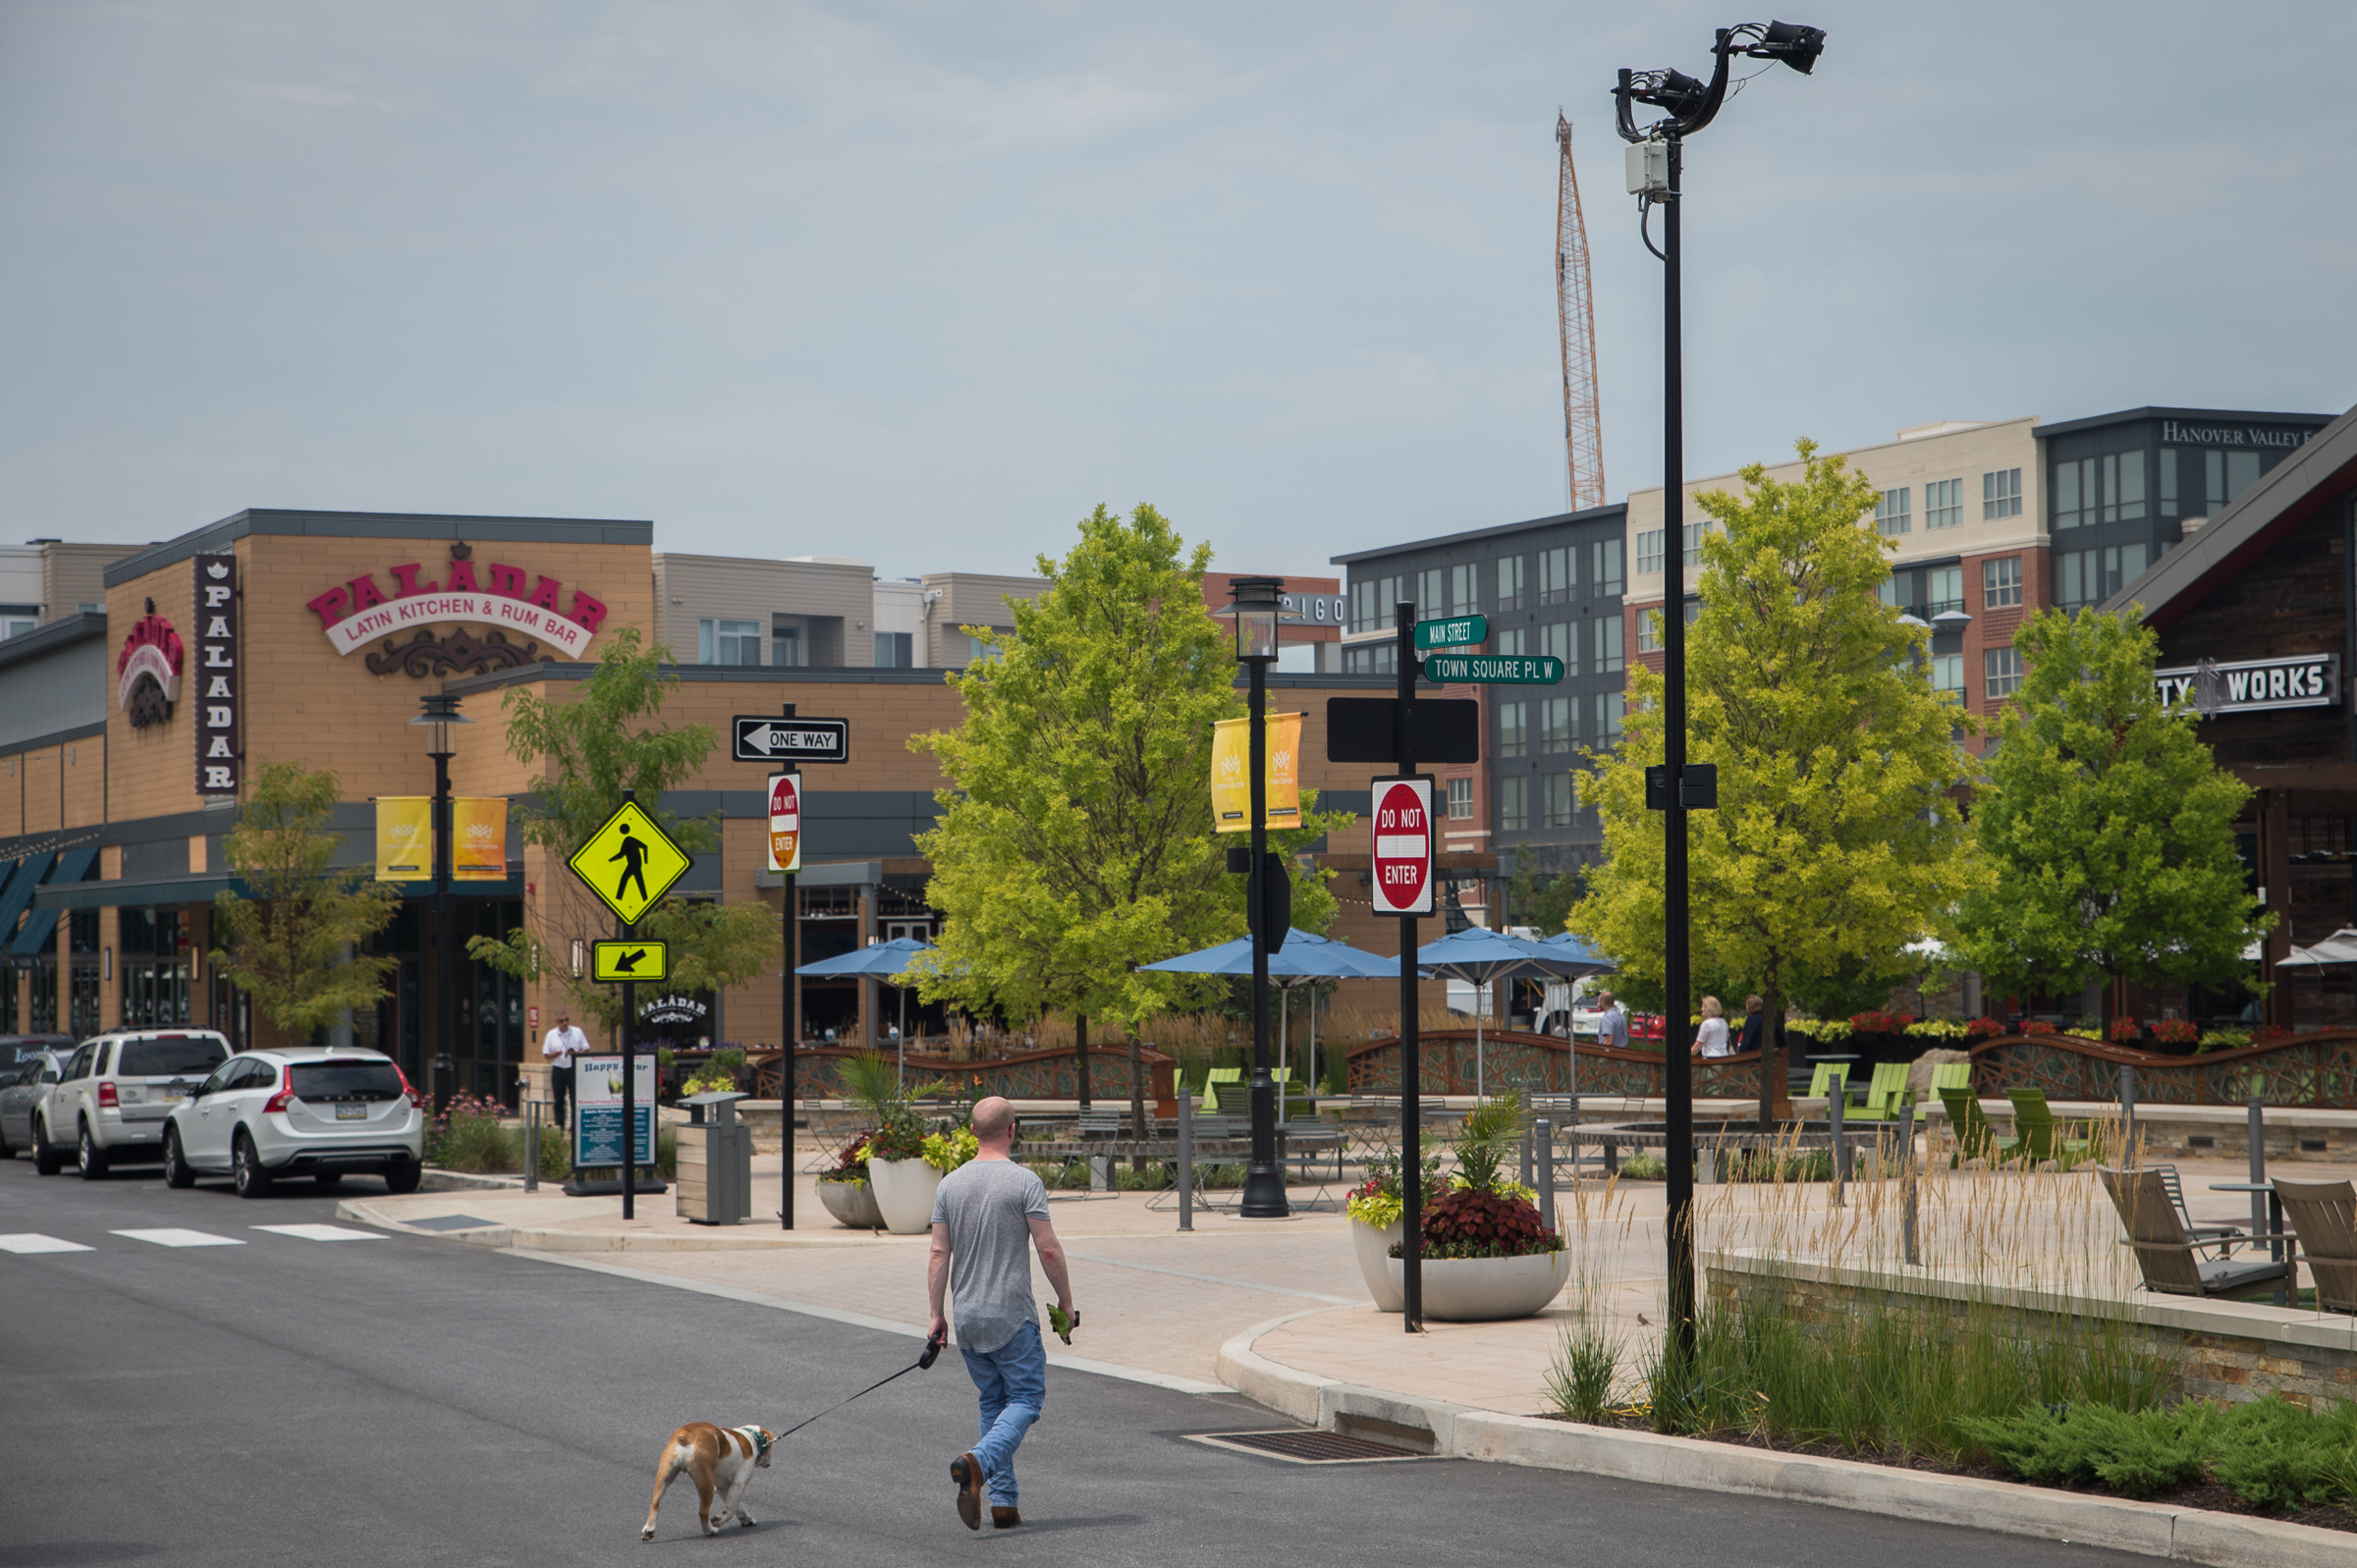 King of Prussia Town Center, situated near I-76 and King of Prussia Mall, July 13th, 2017.